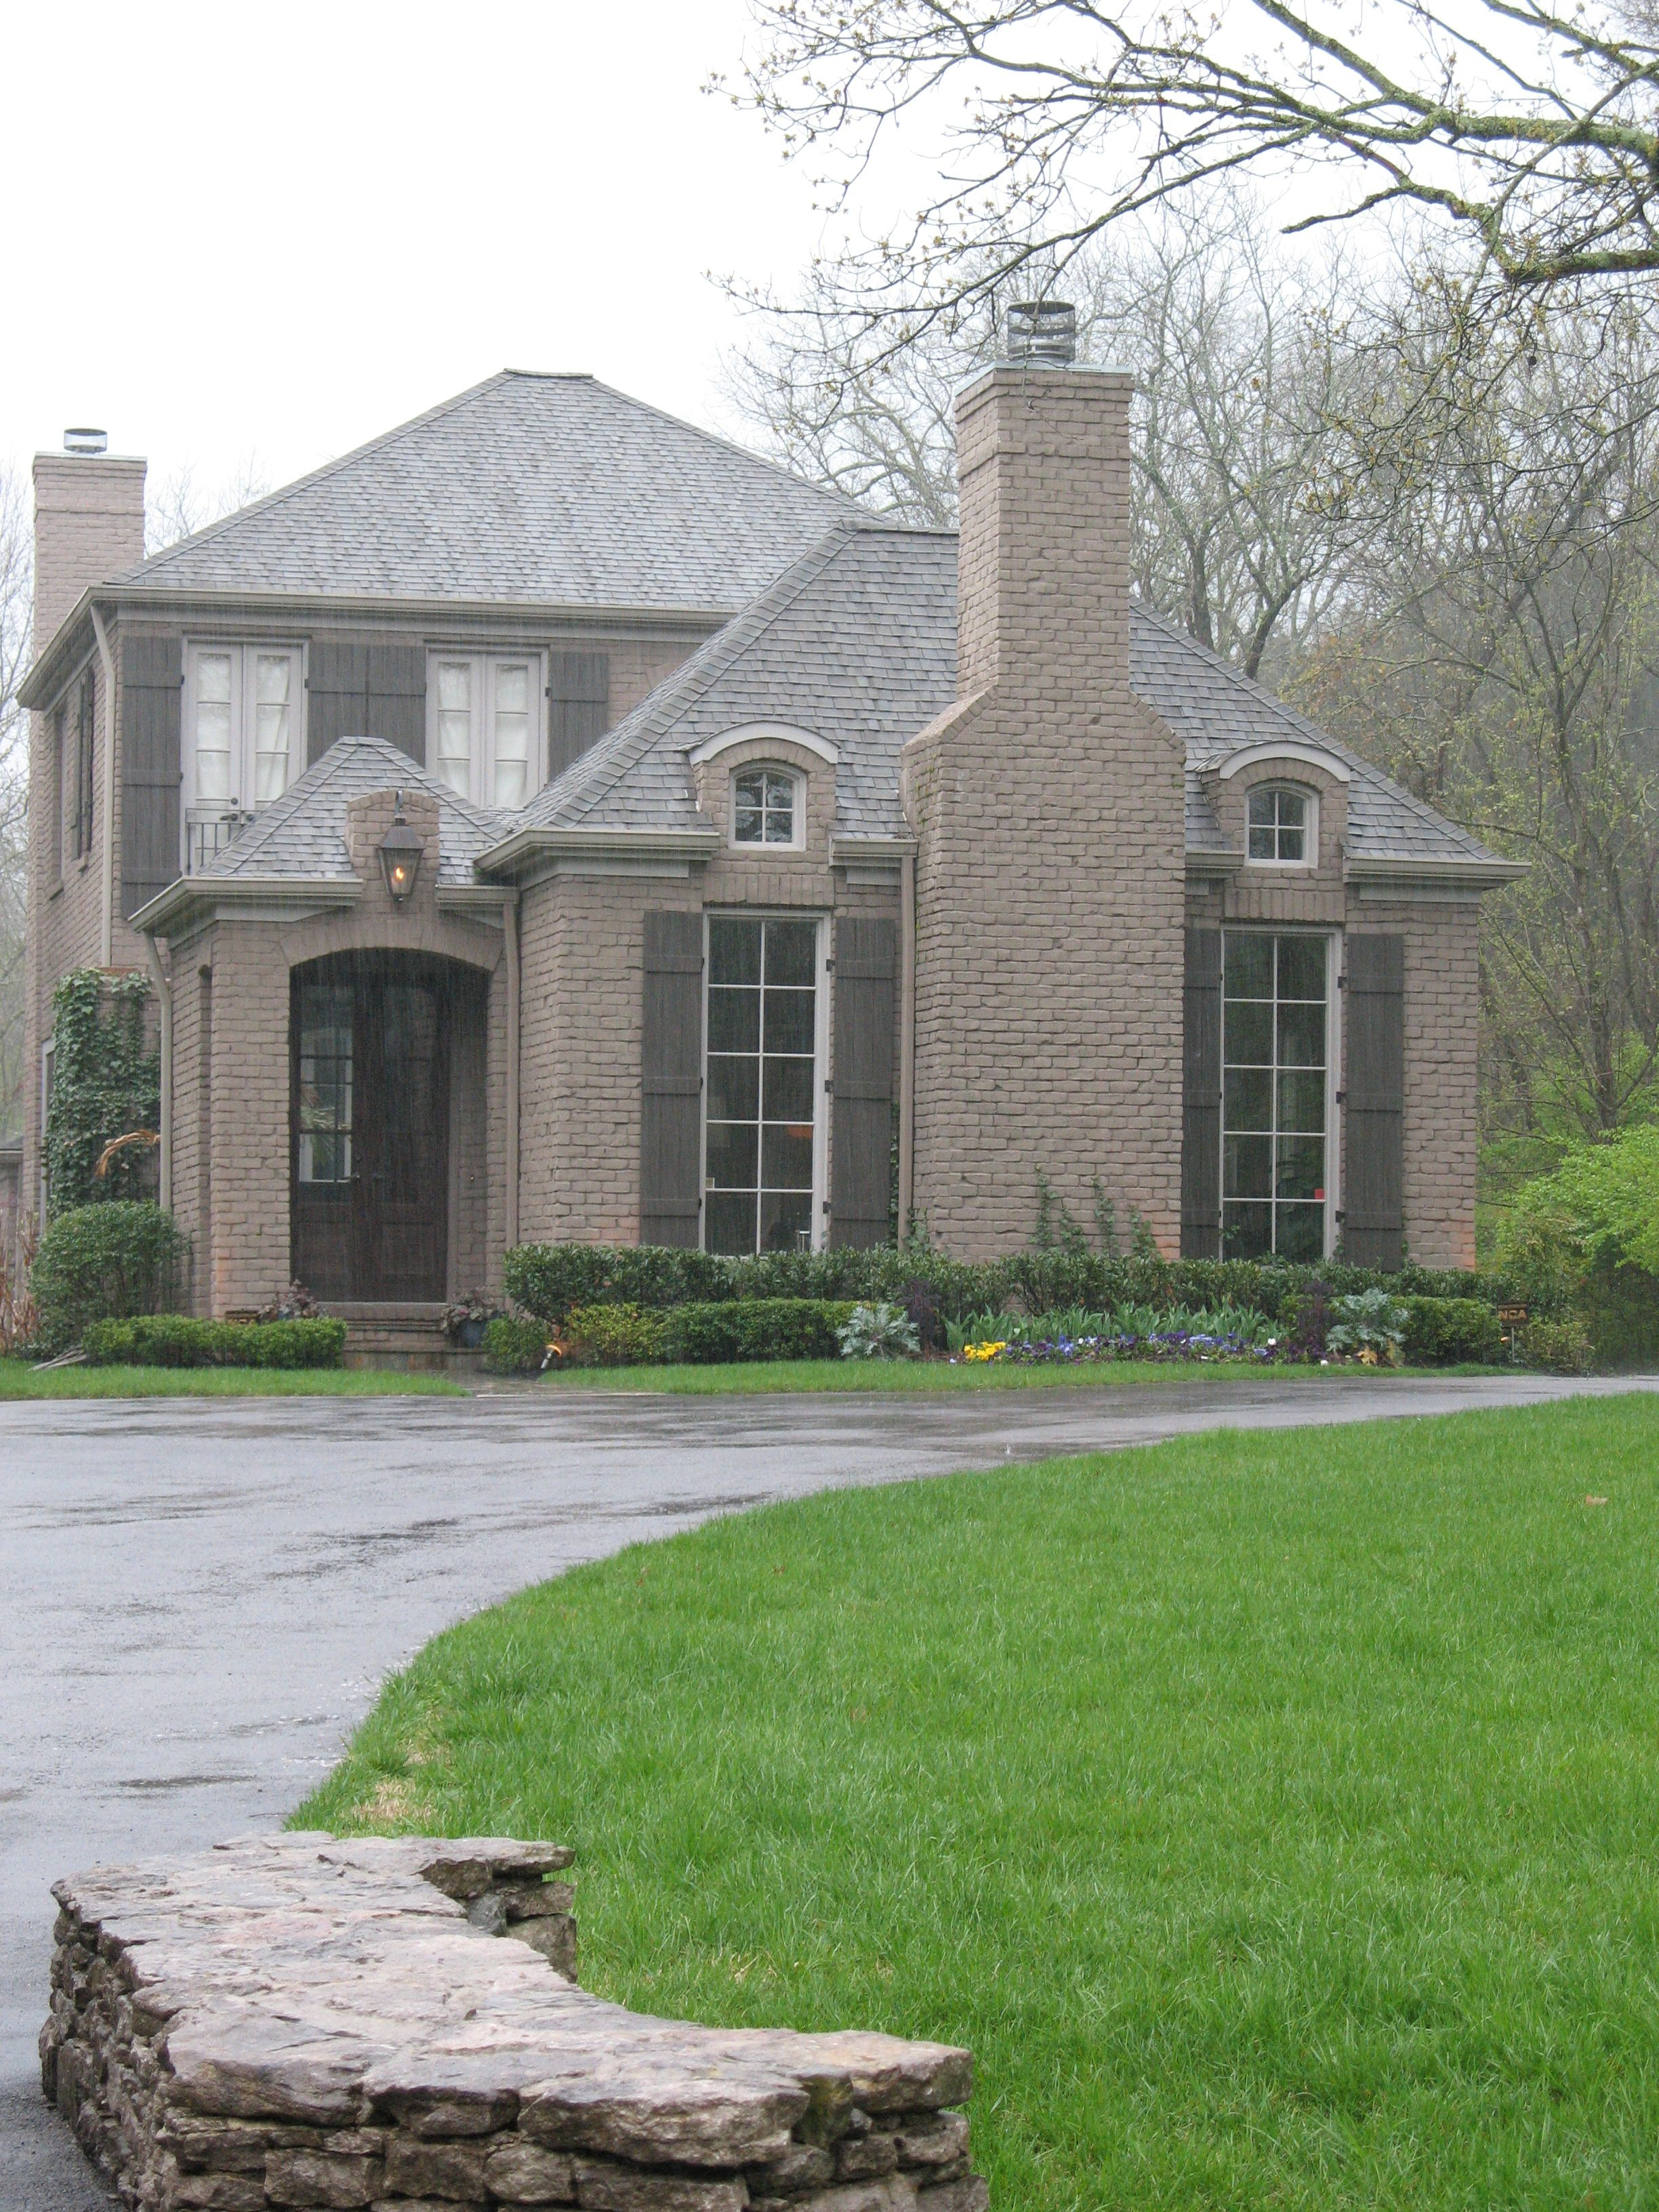 Exterior window design for home  i love the fireplace on the front between the two long windows